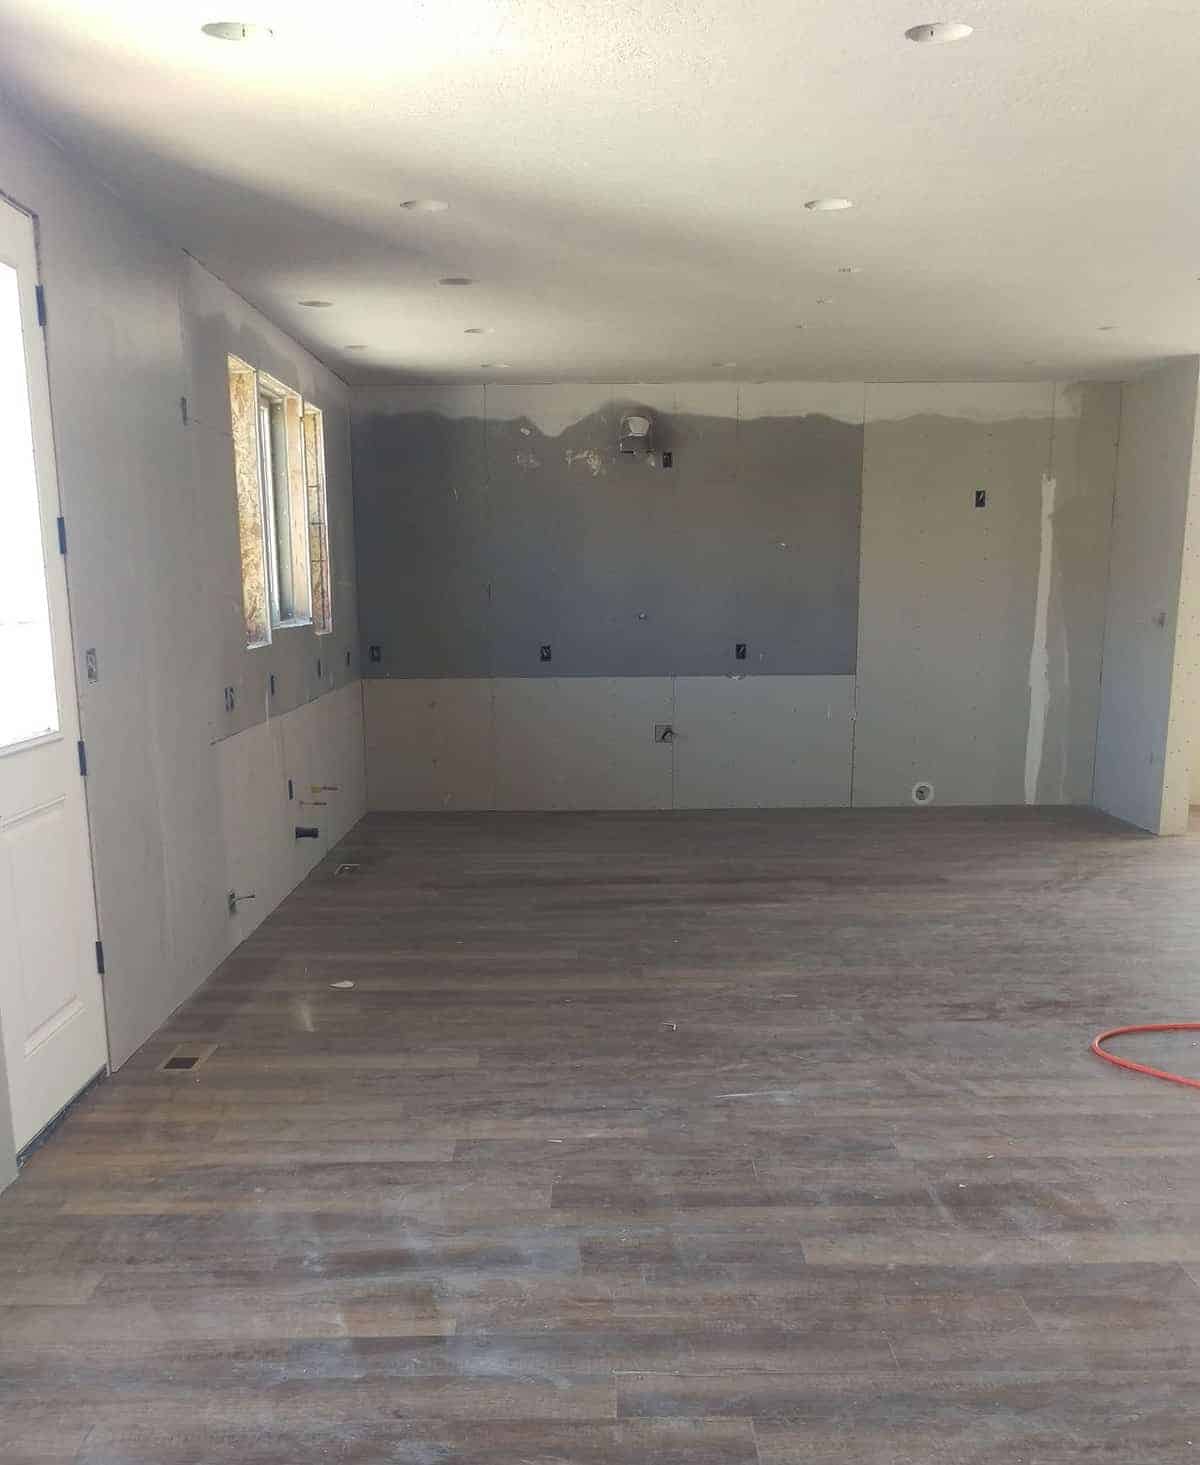 finished floors in a section of the house